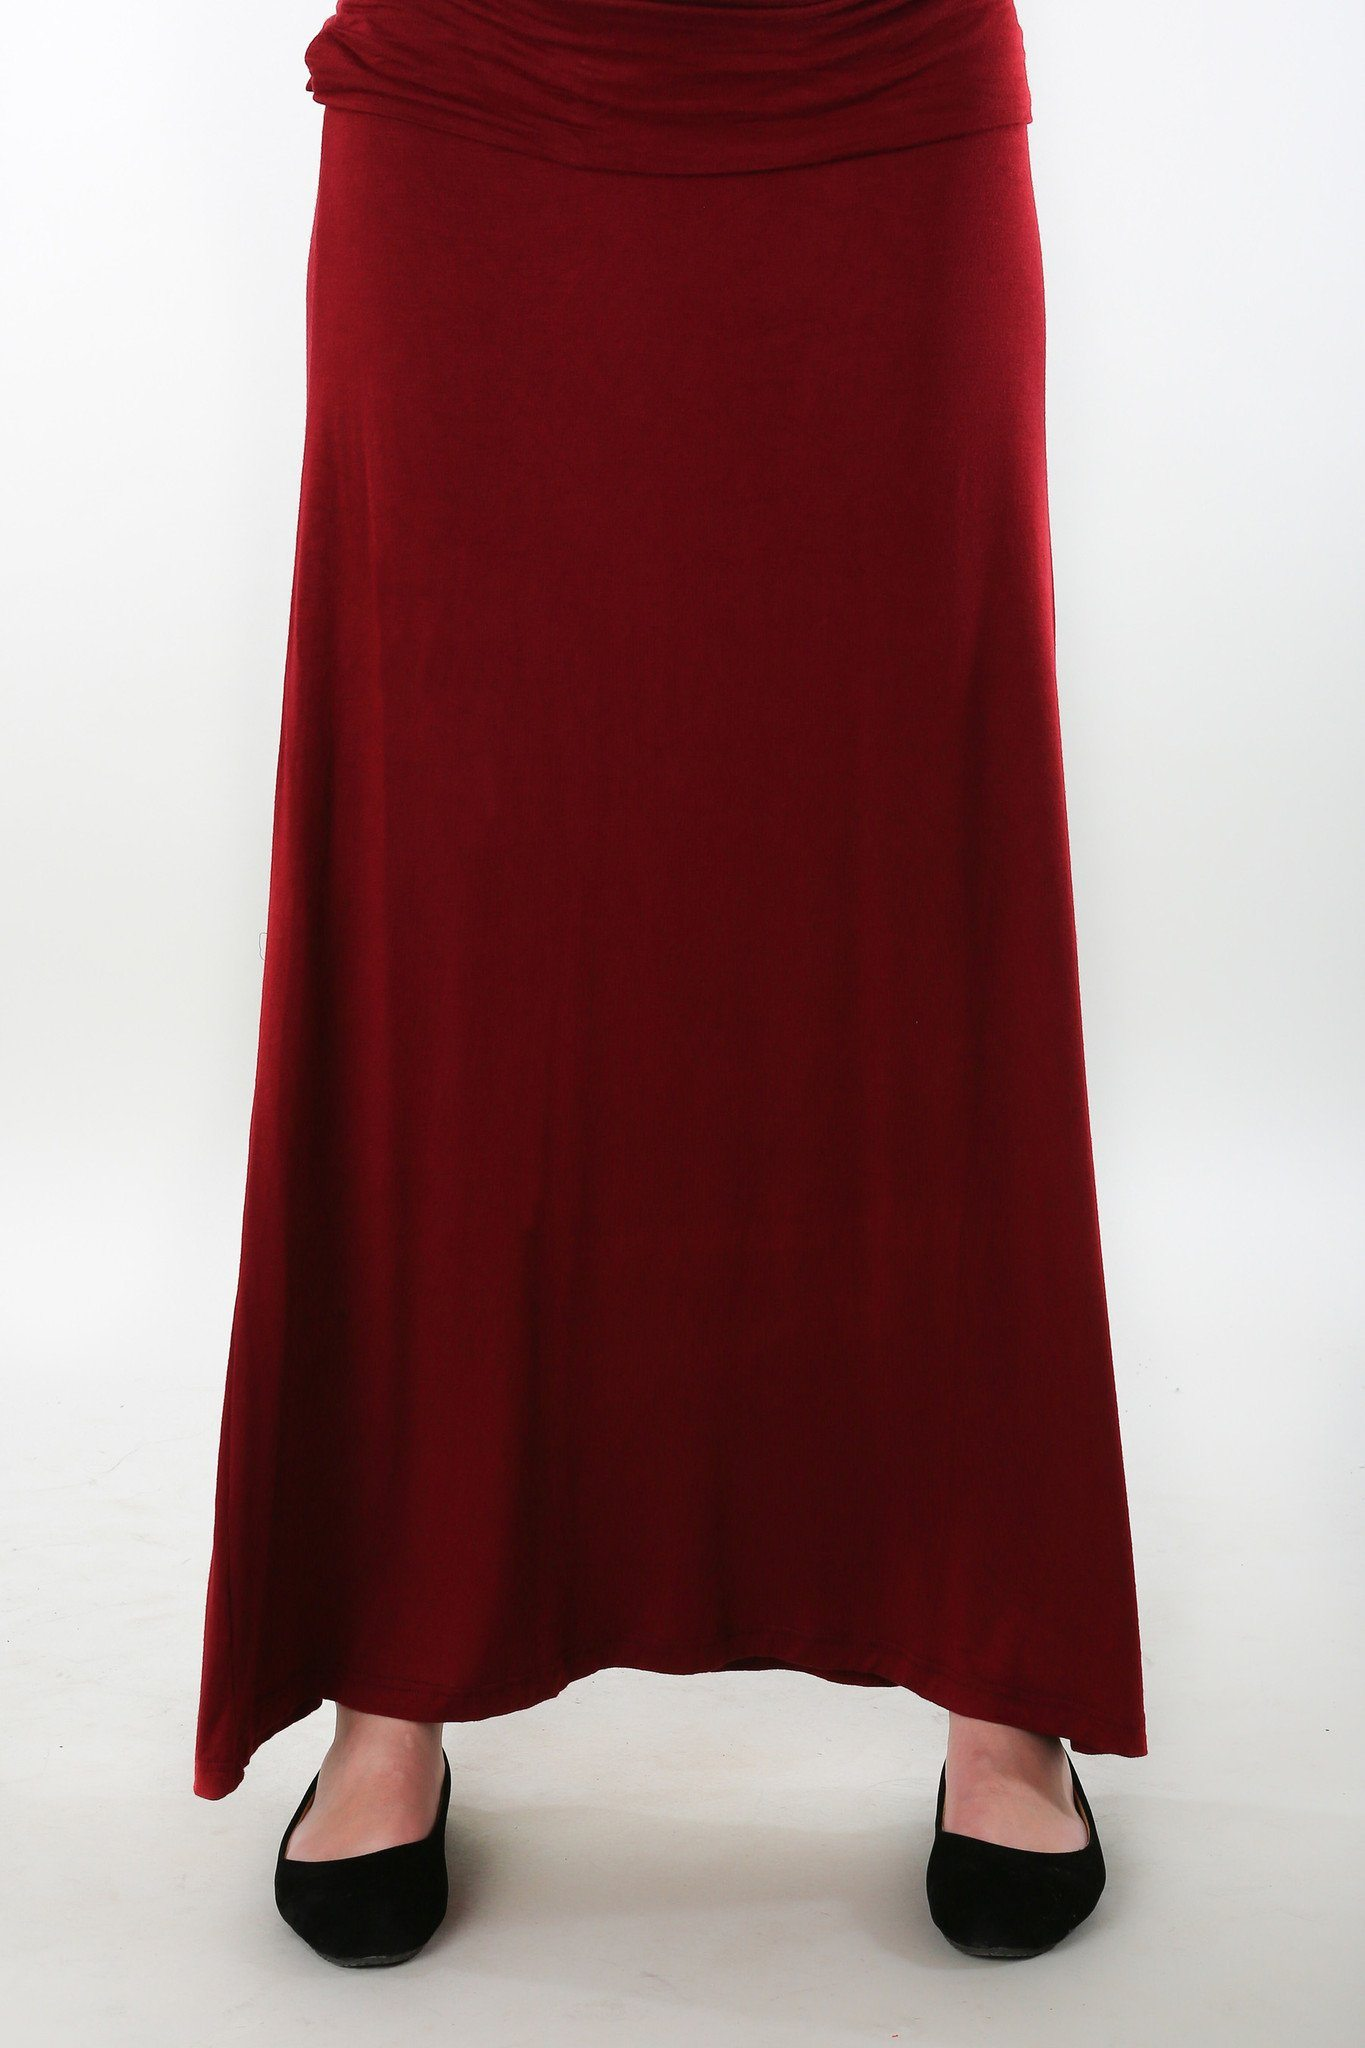 Burgundy Stretch Maternity Skirt - MOMZJOY.COM - 5